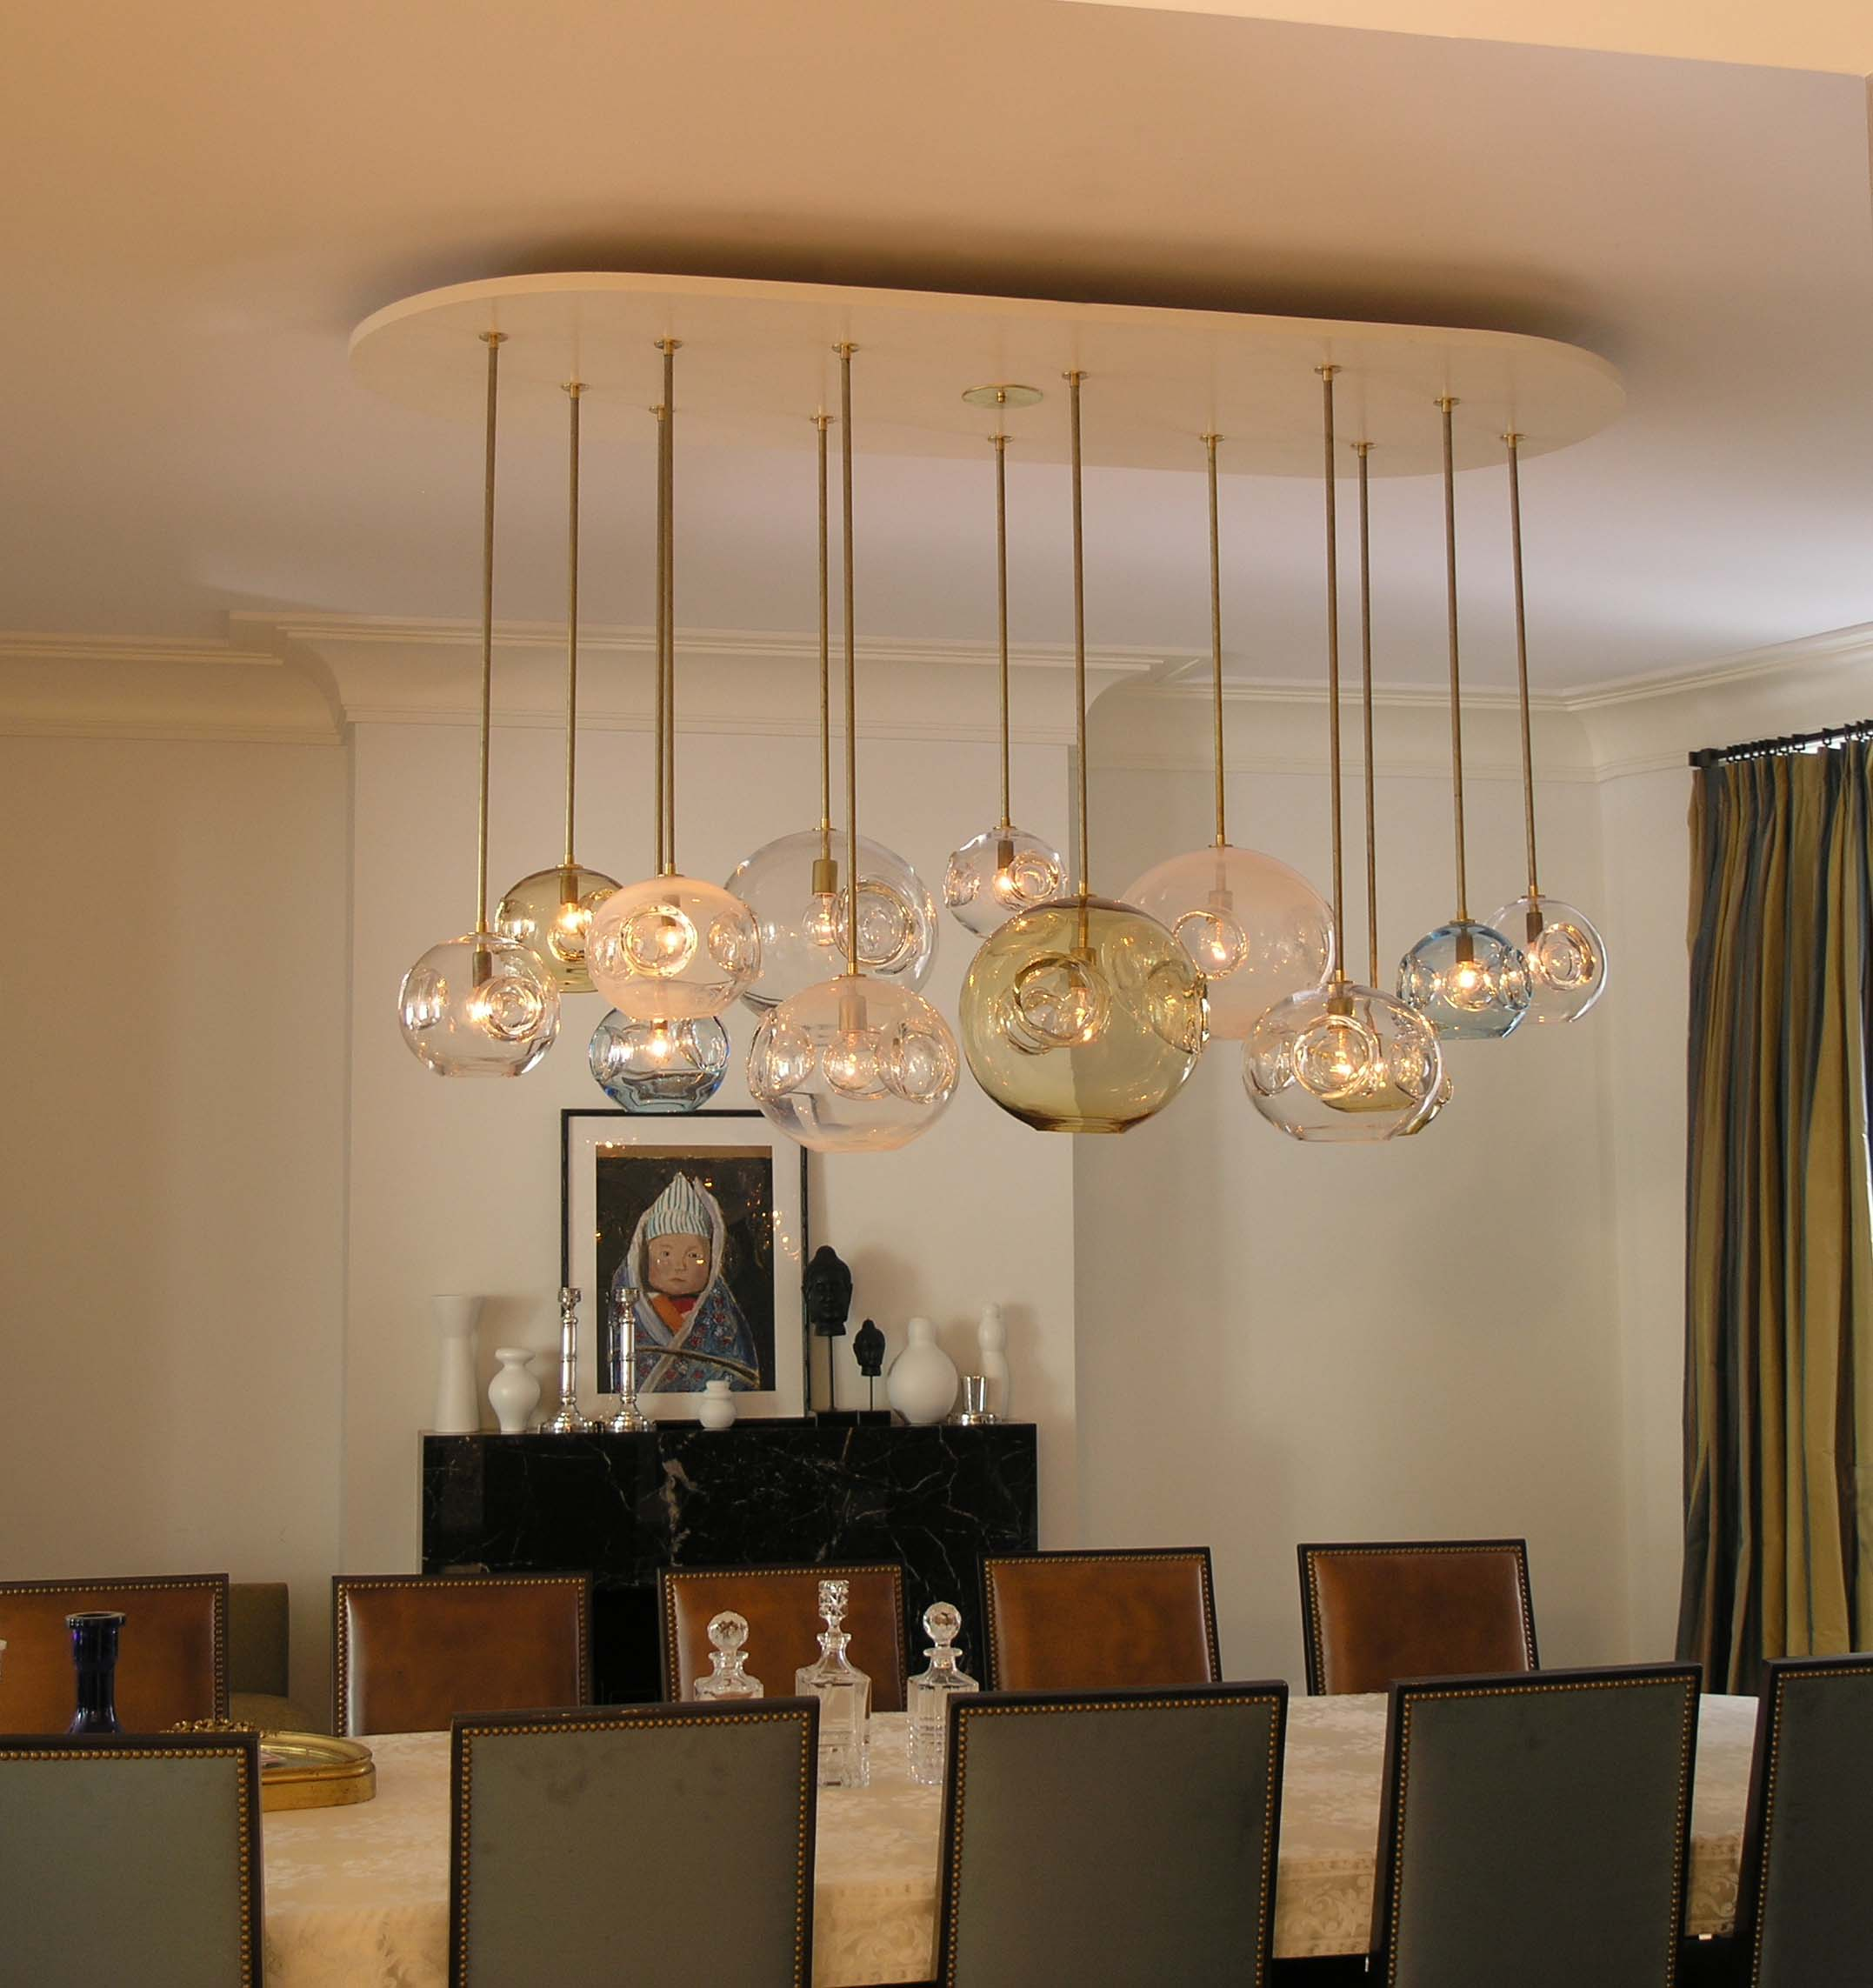 https://gotohomerepair.com/wp-content/uploads/2015/10/creative_dining_room_lighting_with_aqua_chandelier.jpg